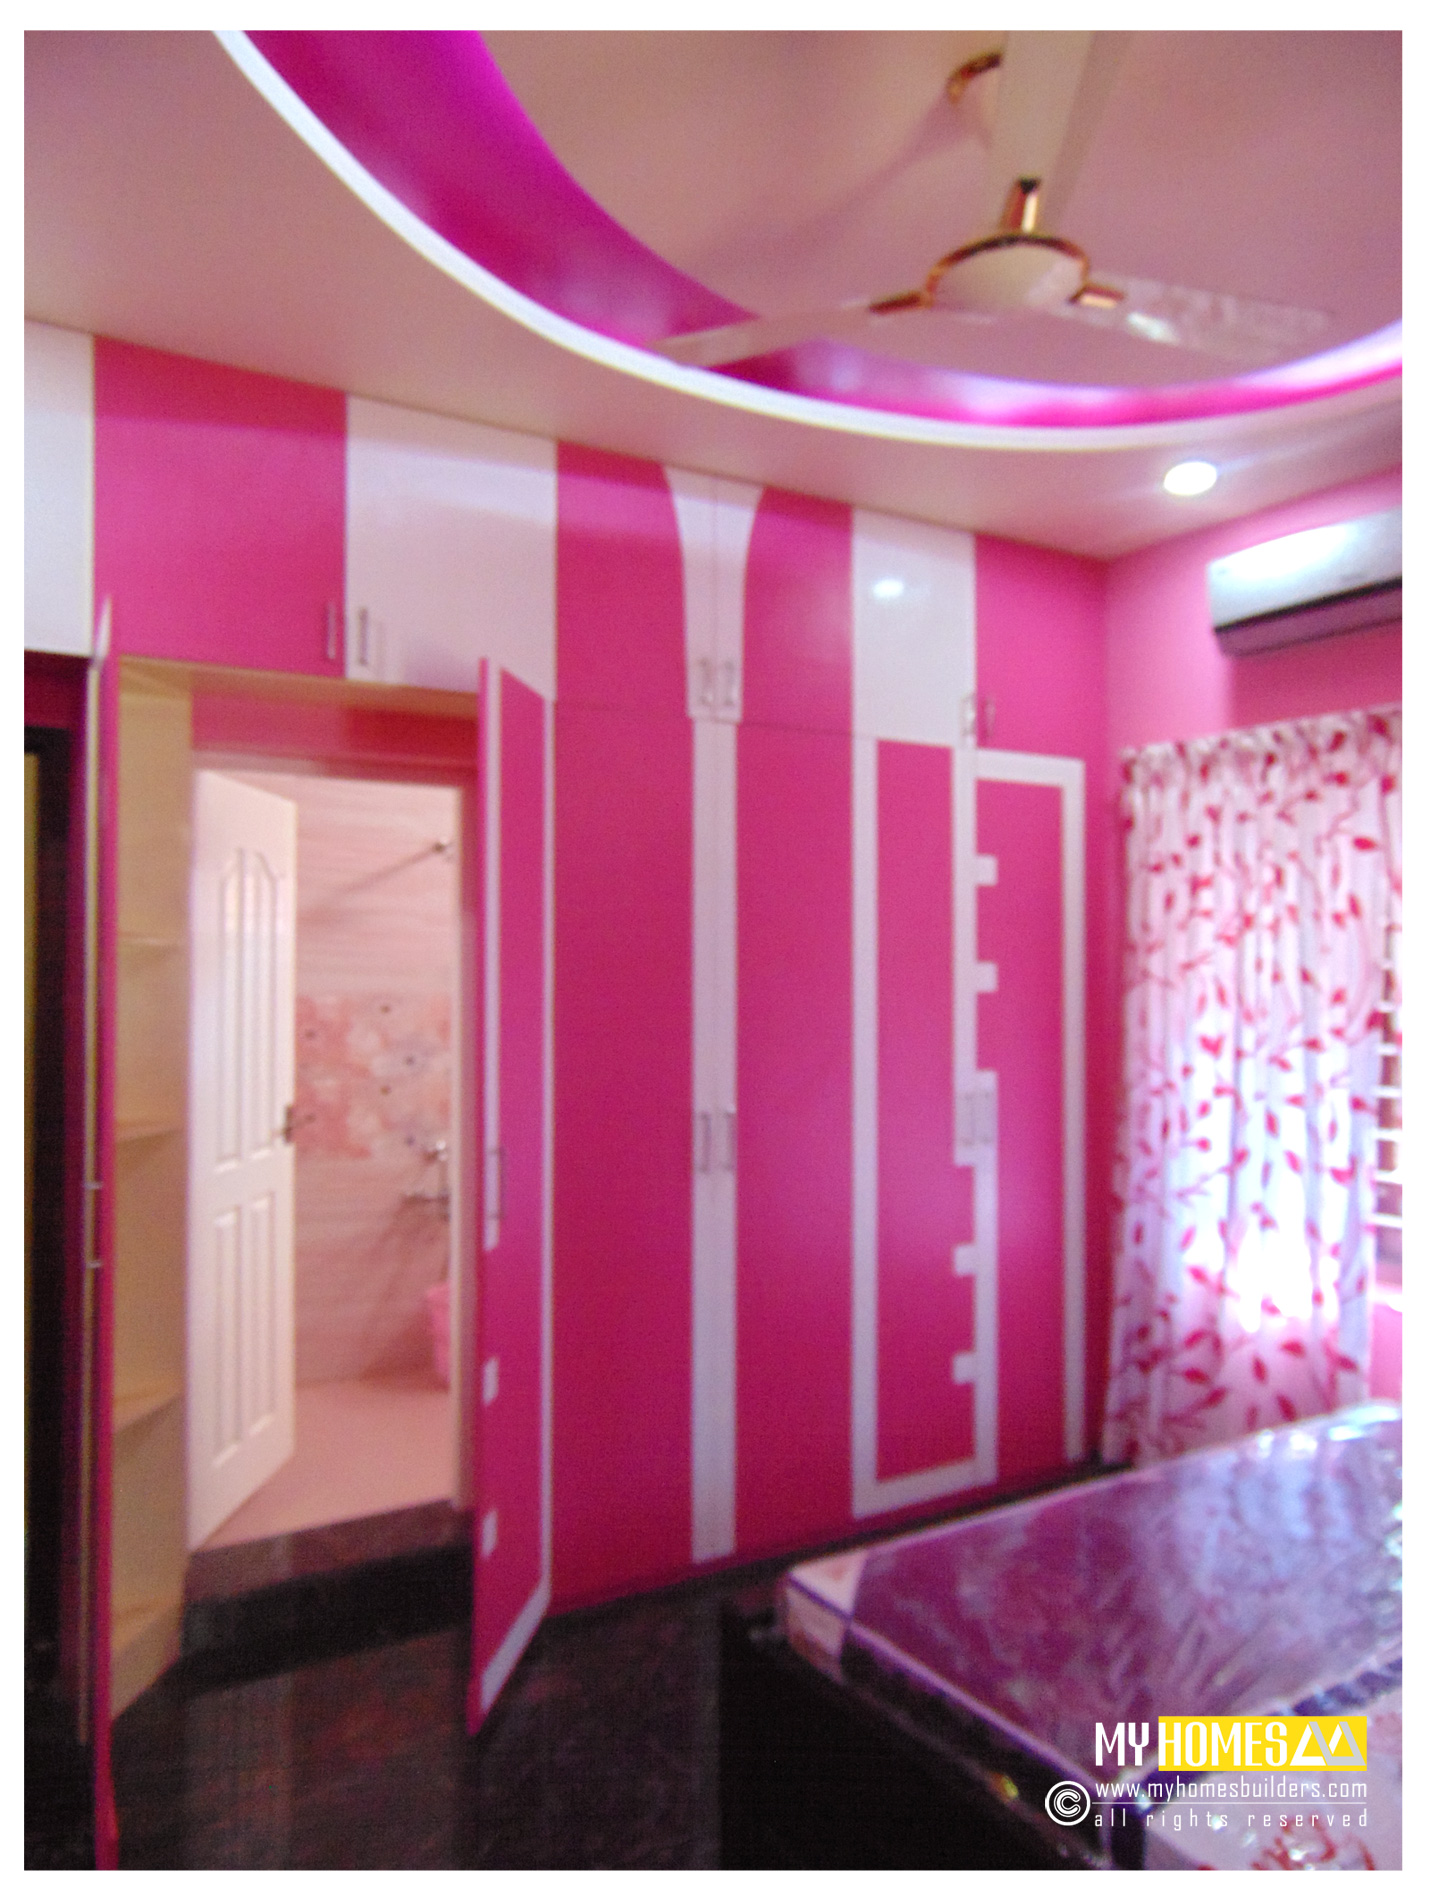 Modern interior idea for home bedroom designs kerala india for Interior designs in kerala